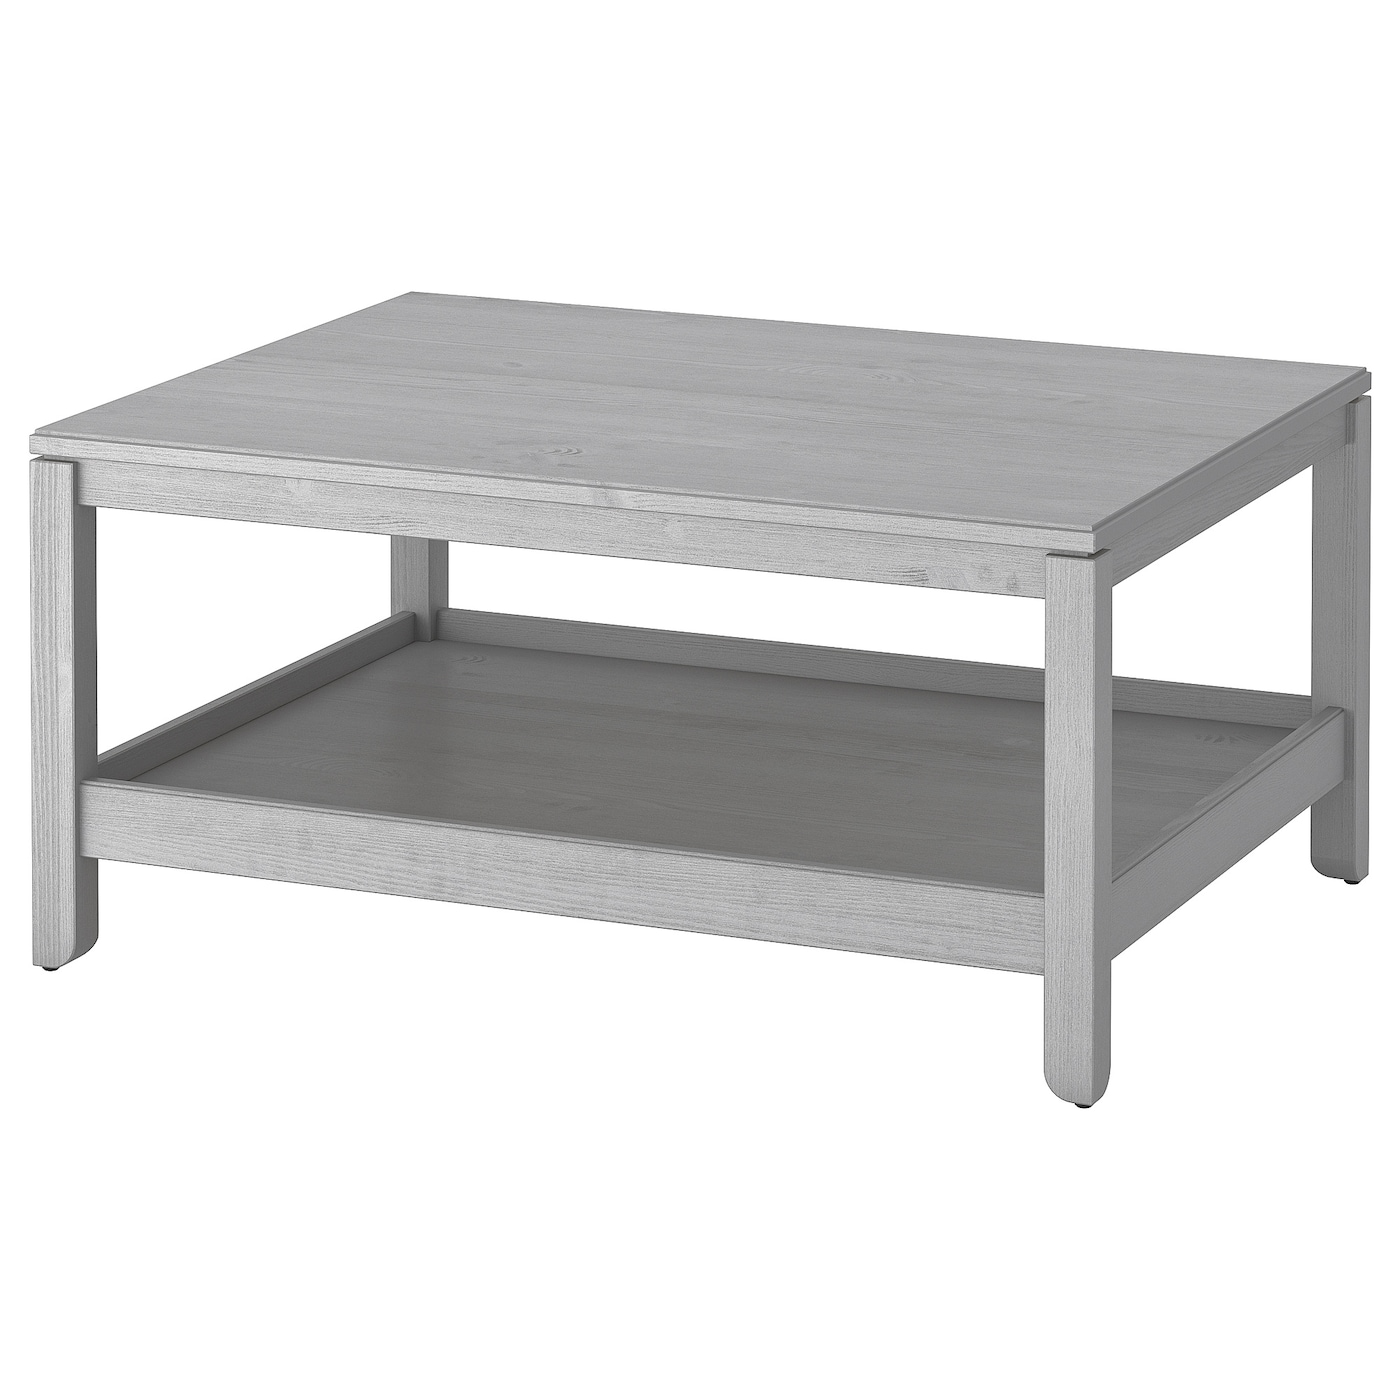 Havsta Coffee Table Gray 39 3 8x29 1